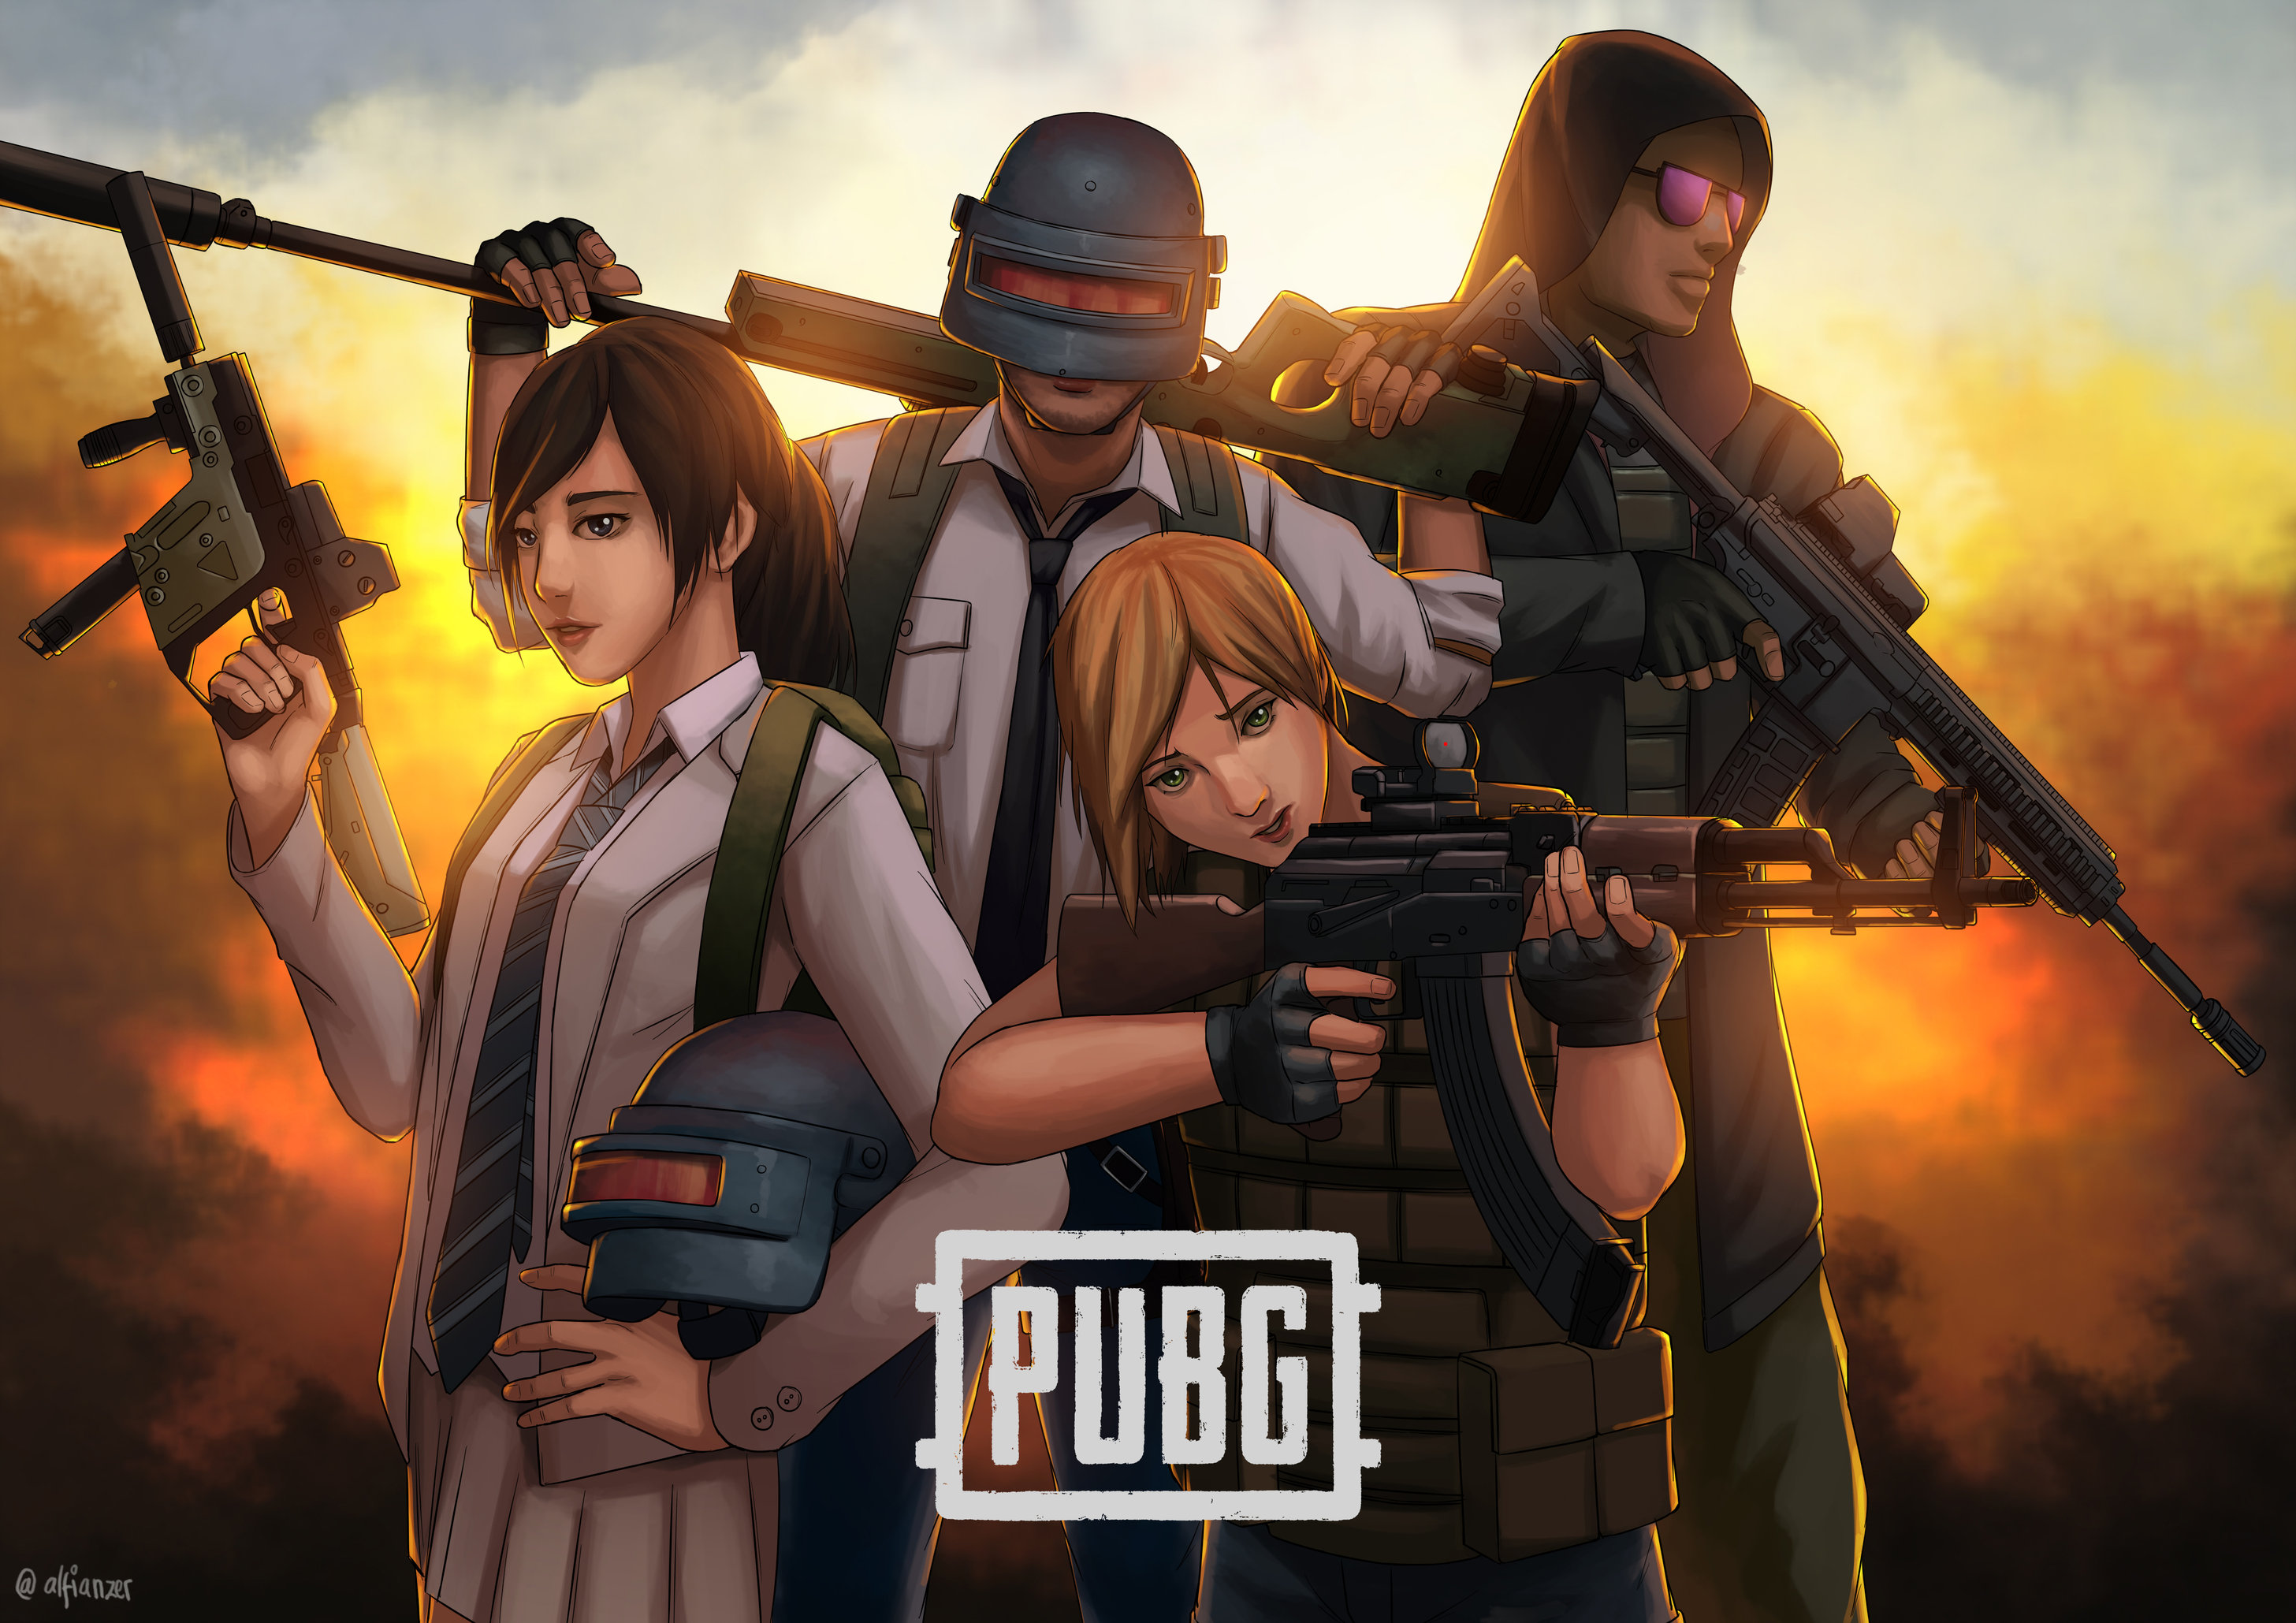 1920x1080 Pubg Squad Art Laptop Full HD 1080P HD 4k